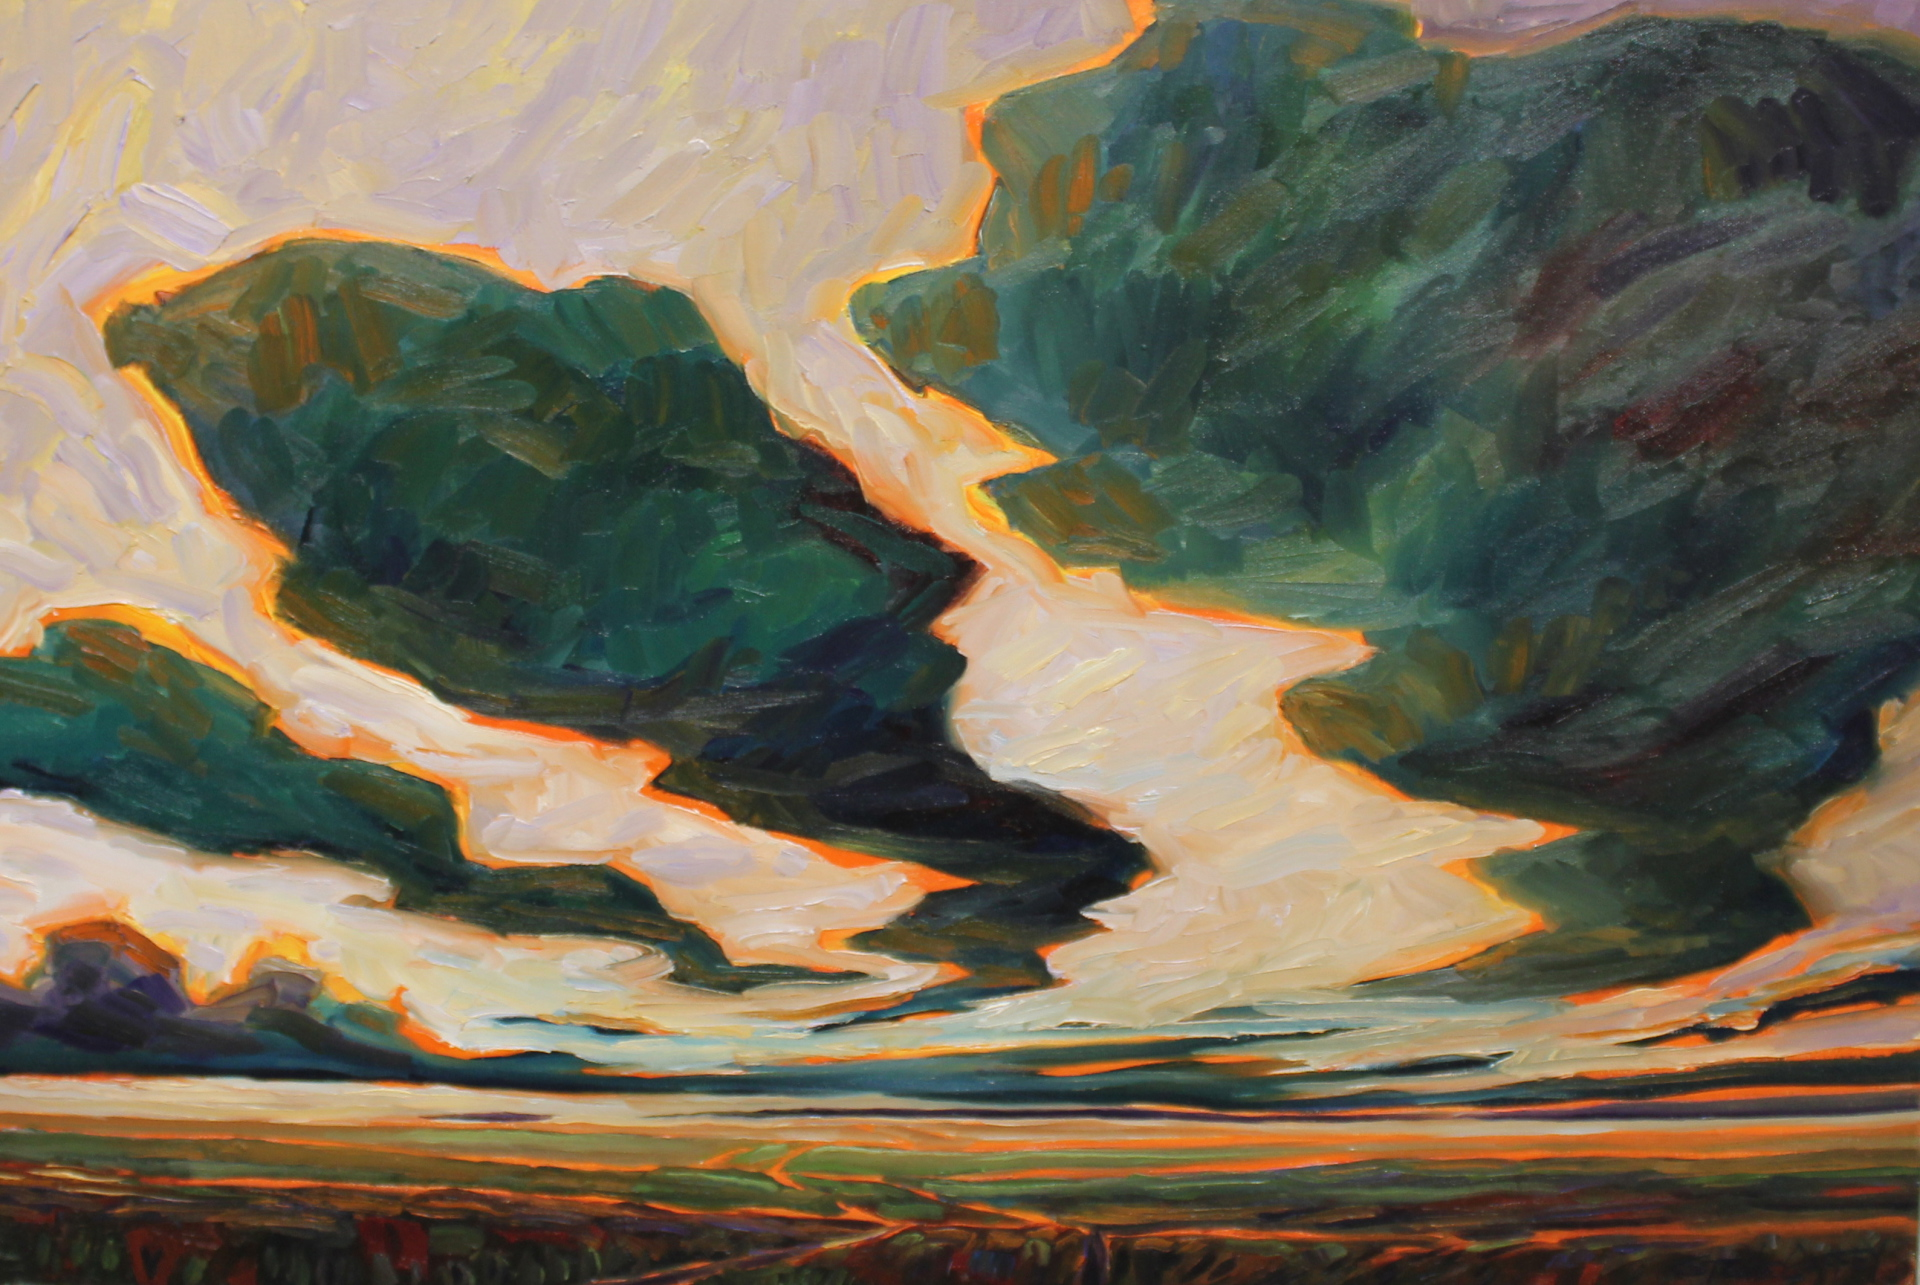 EVENING WIND - 20X30 - OIL ON CANVAS - 2014